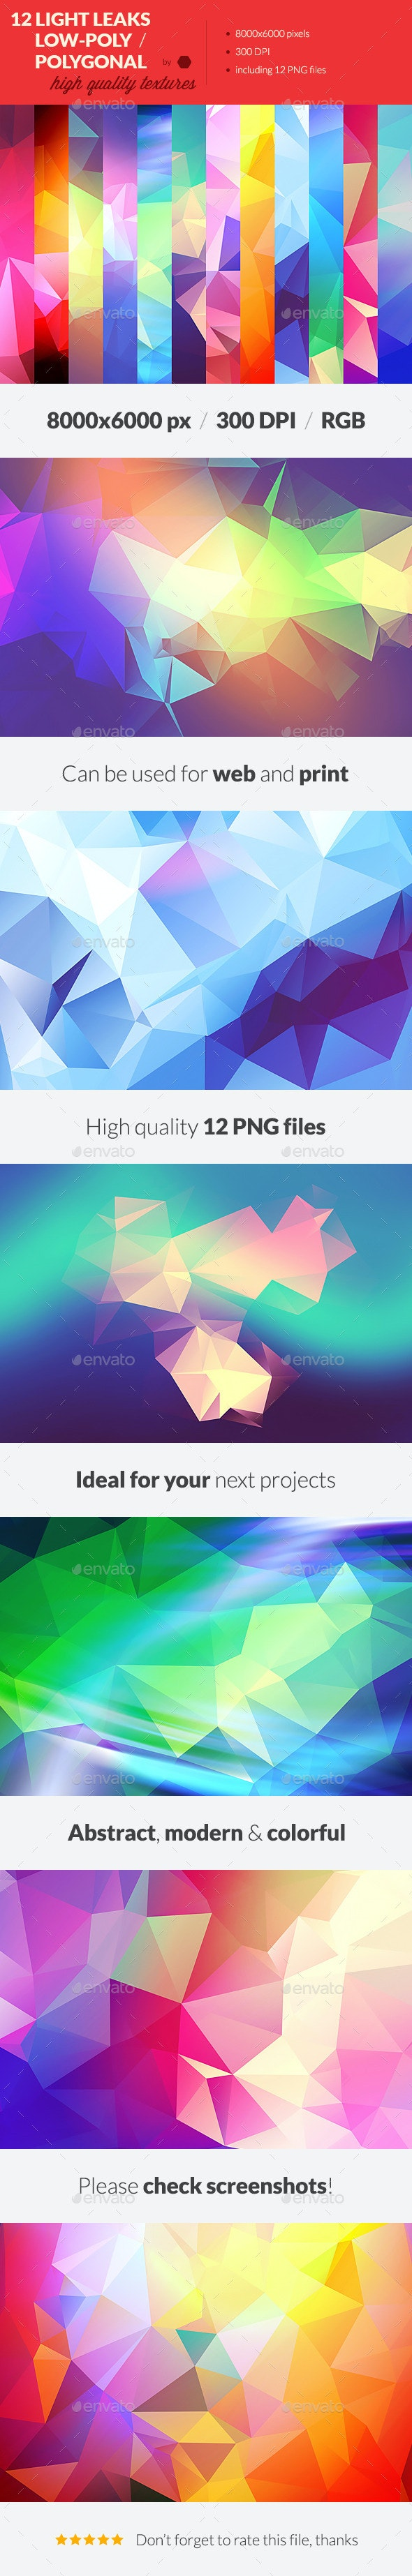 12 Light Leak Polygonal Background Textures #3 - Abstract Backgrounds